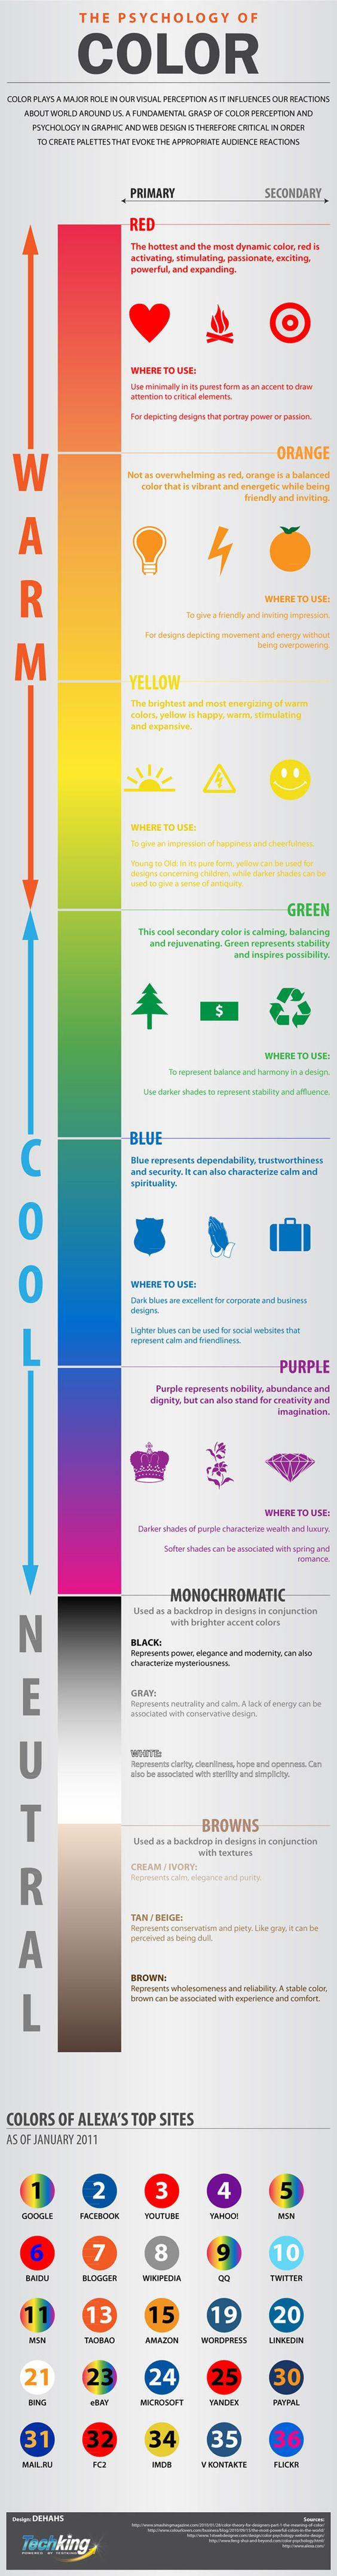 Infographic: The Psychology of Color  #flowchart #infographic